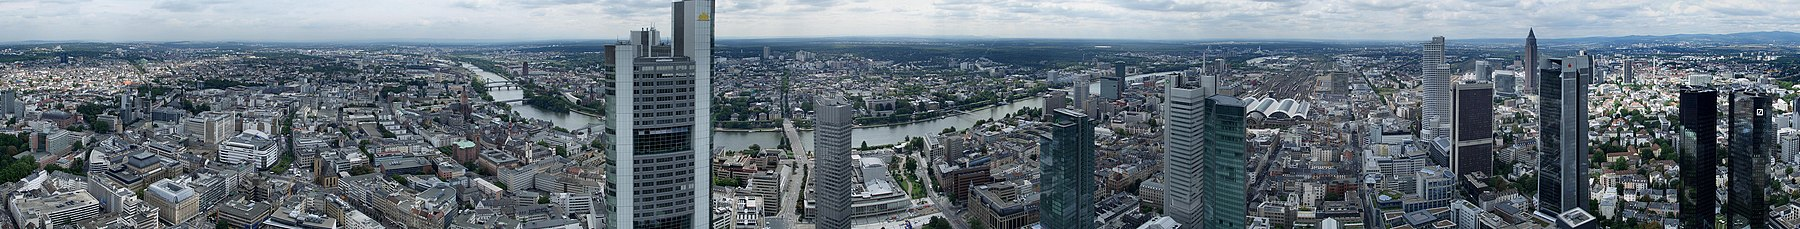 Panorama of Frankfurt seen from the Maintower observation deck